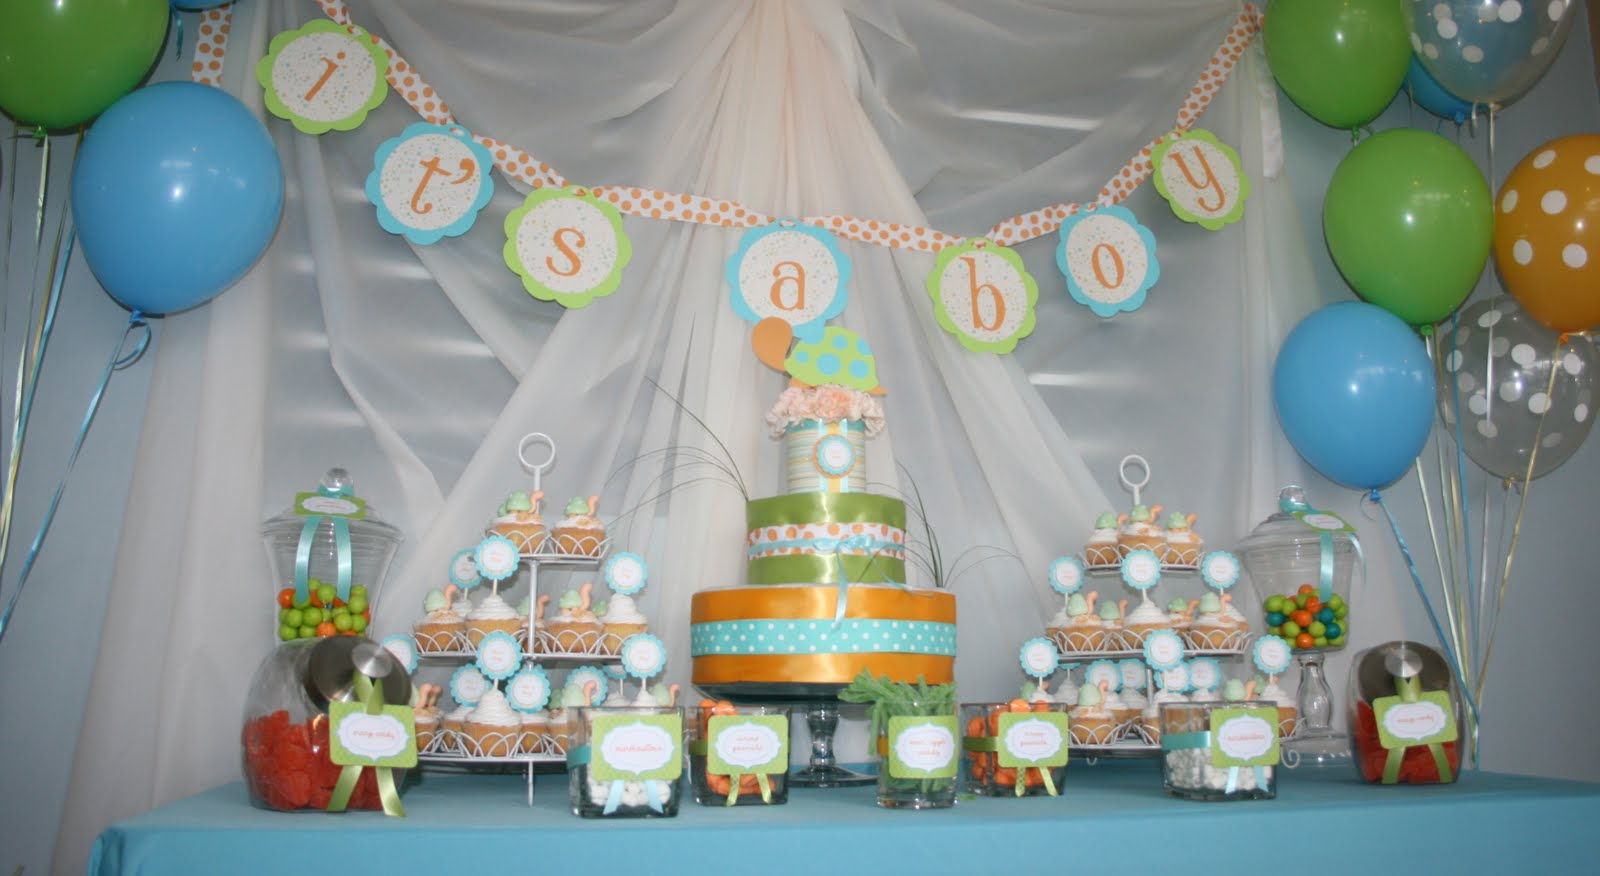 Partylicious events pr turtle baby shower for Baby shower decoration ideas images